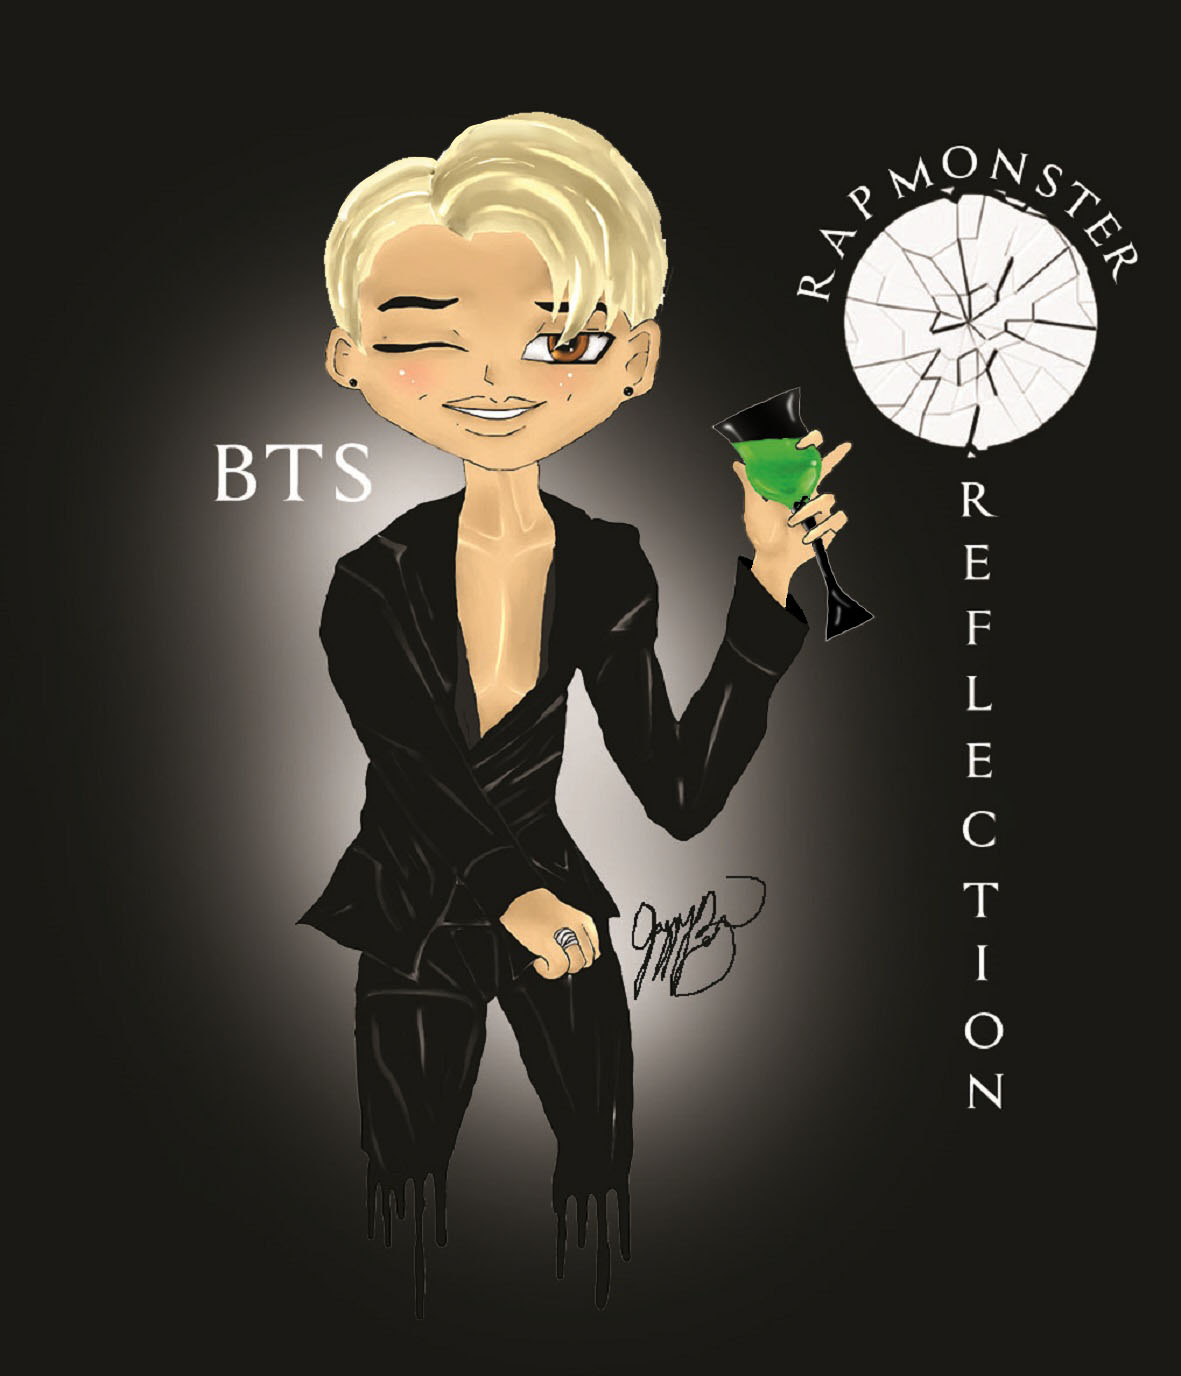 BTS Rap Monster Reflection 2016